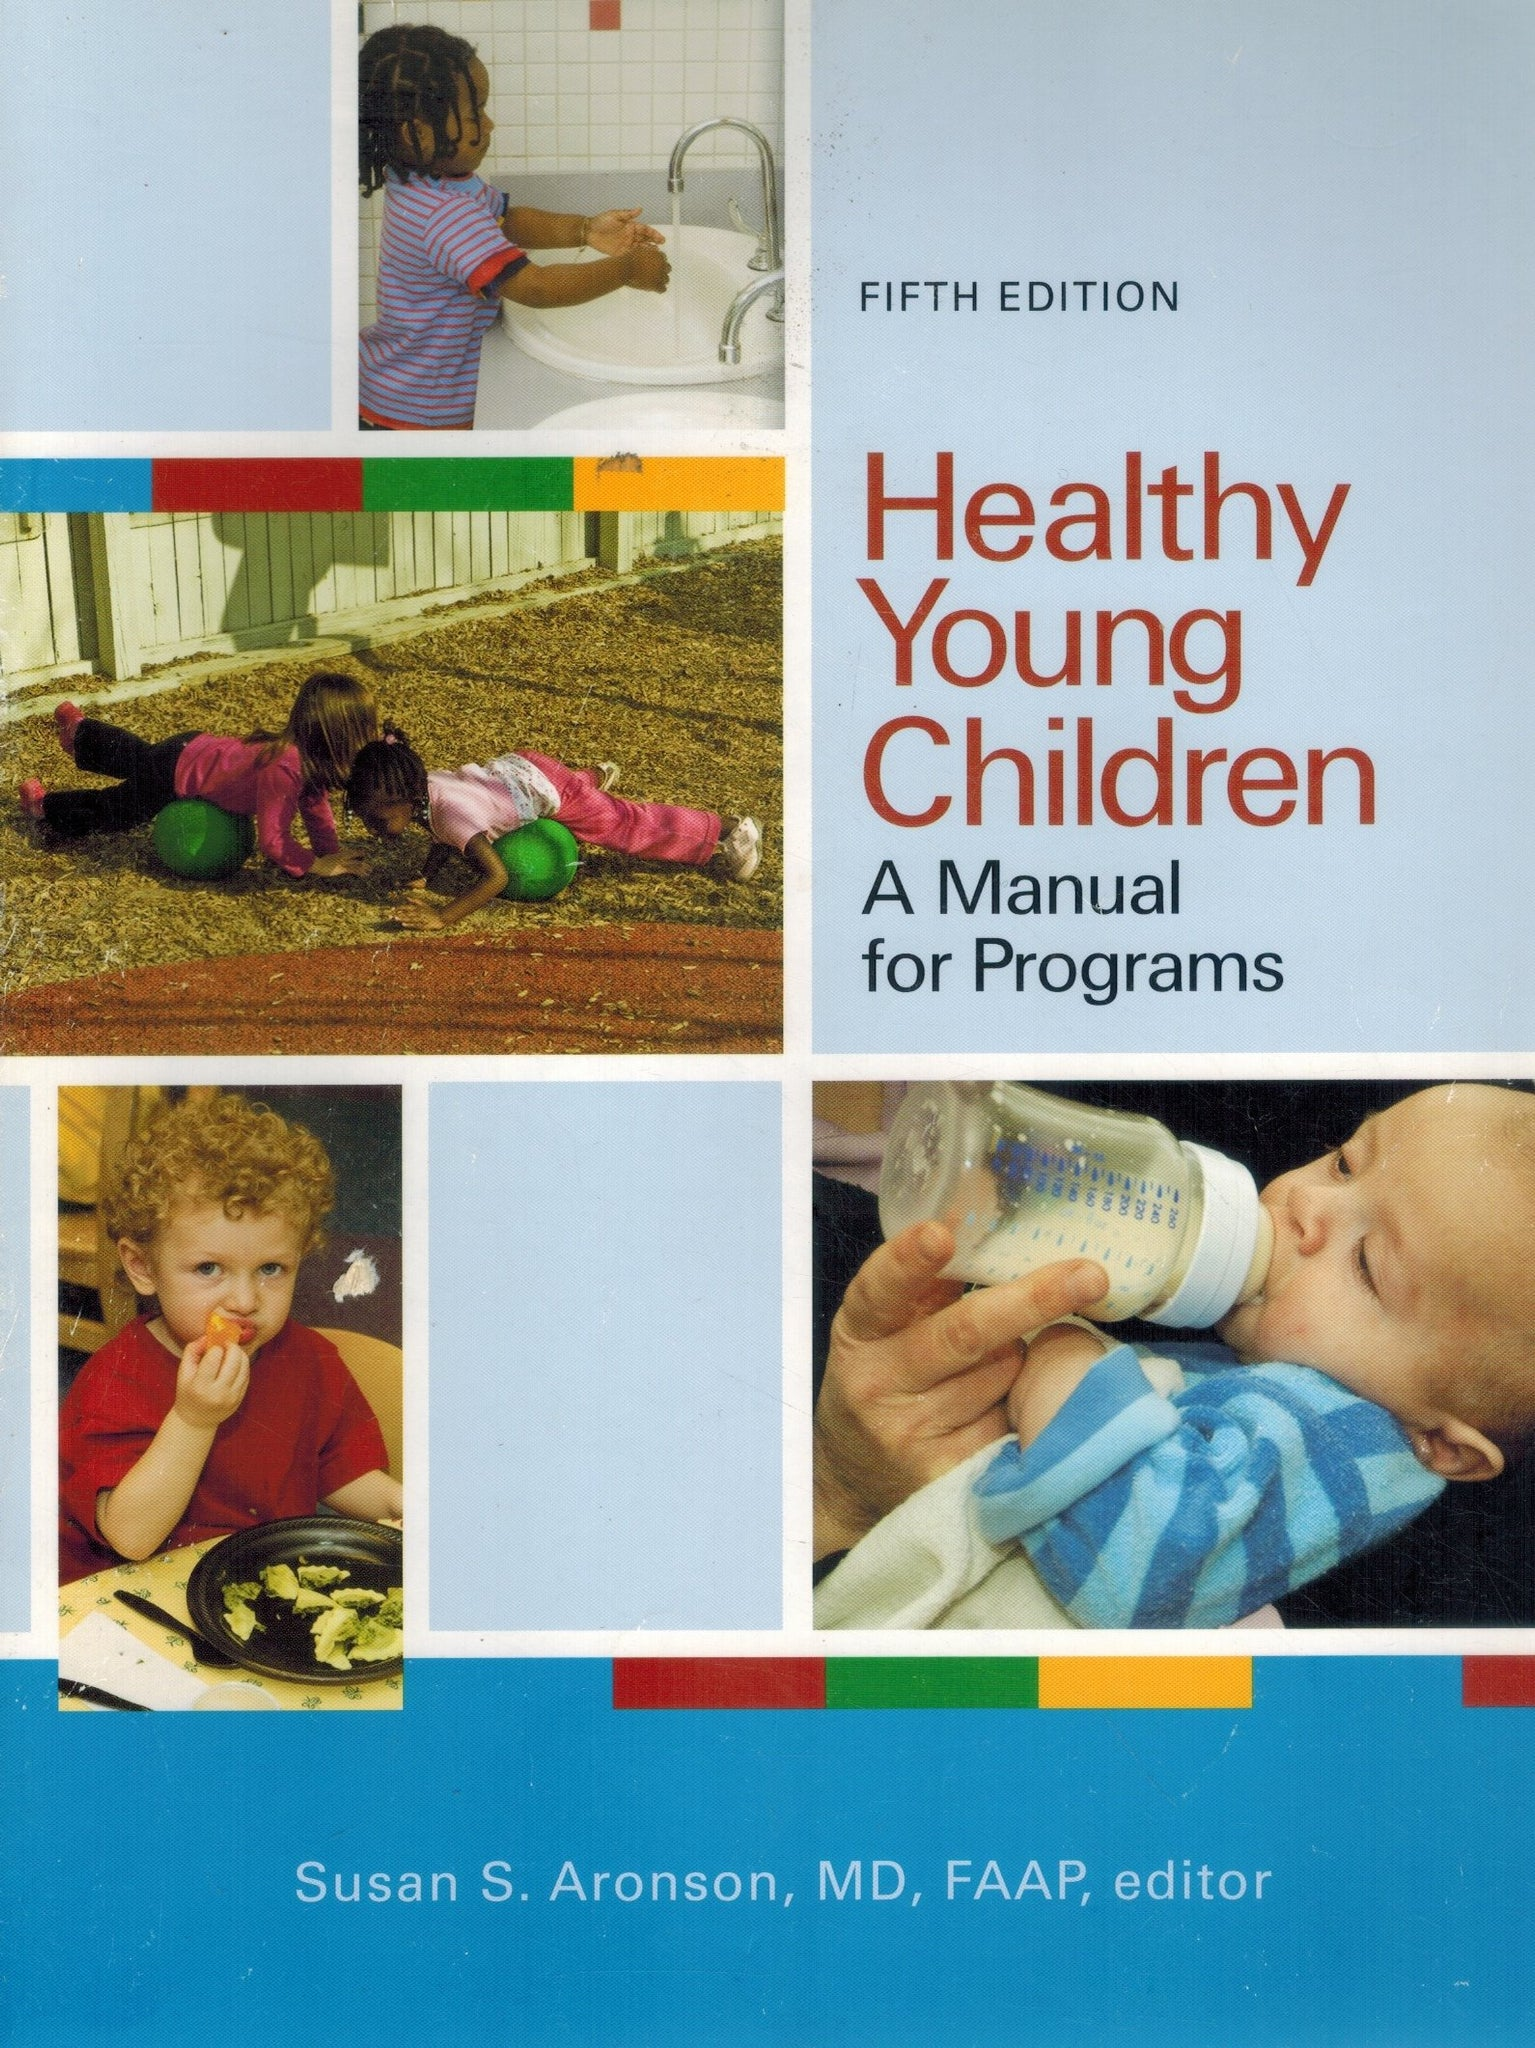 HEALTHY YOUNG CHILDREN  A Manual for Programs  by Aronson, Susan S.